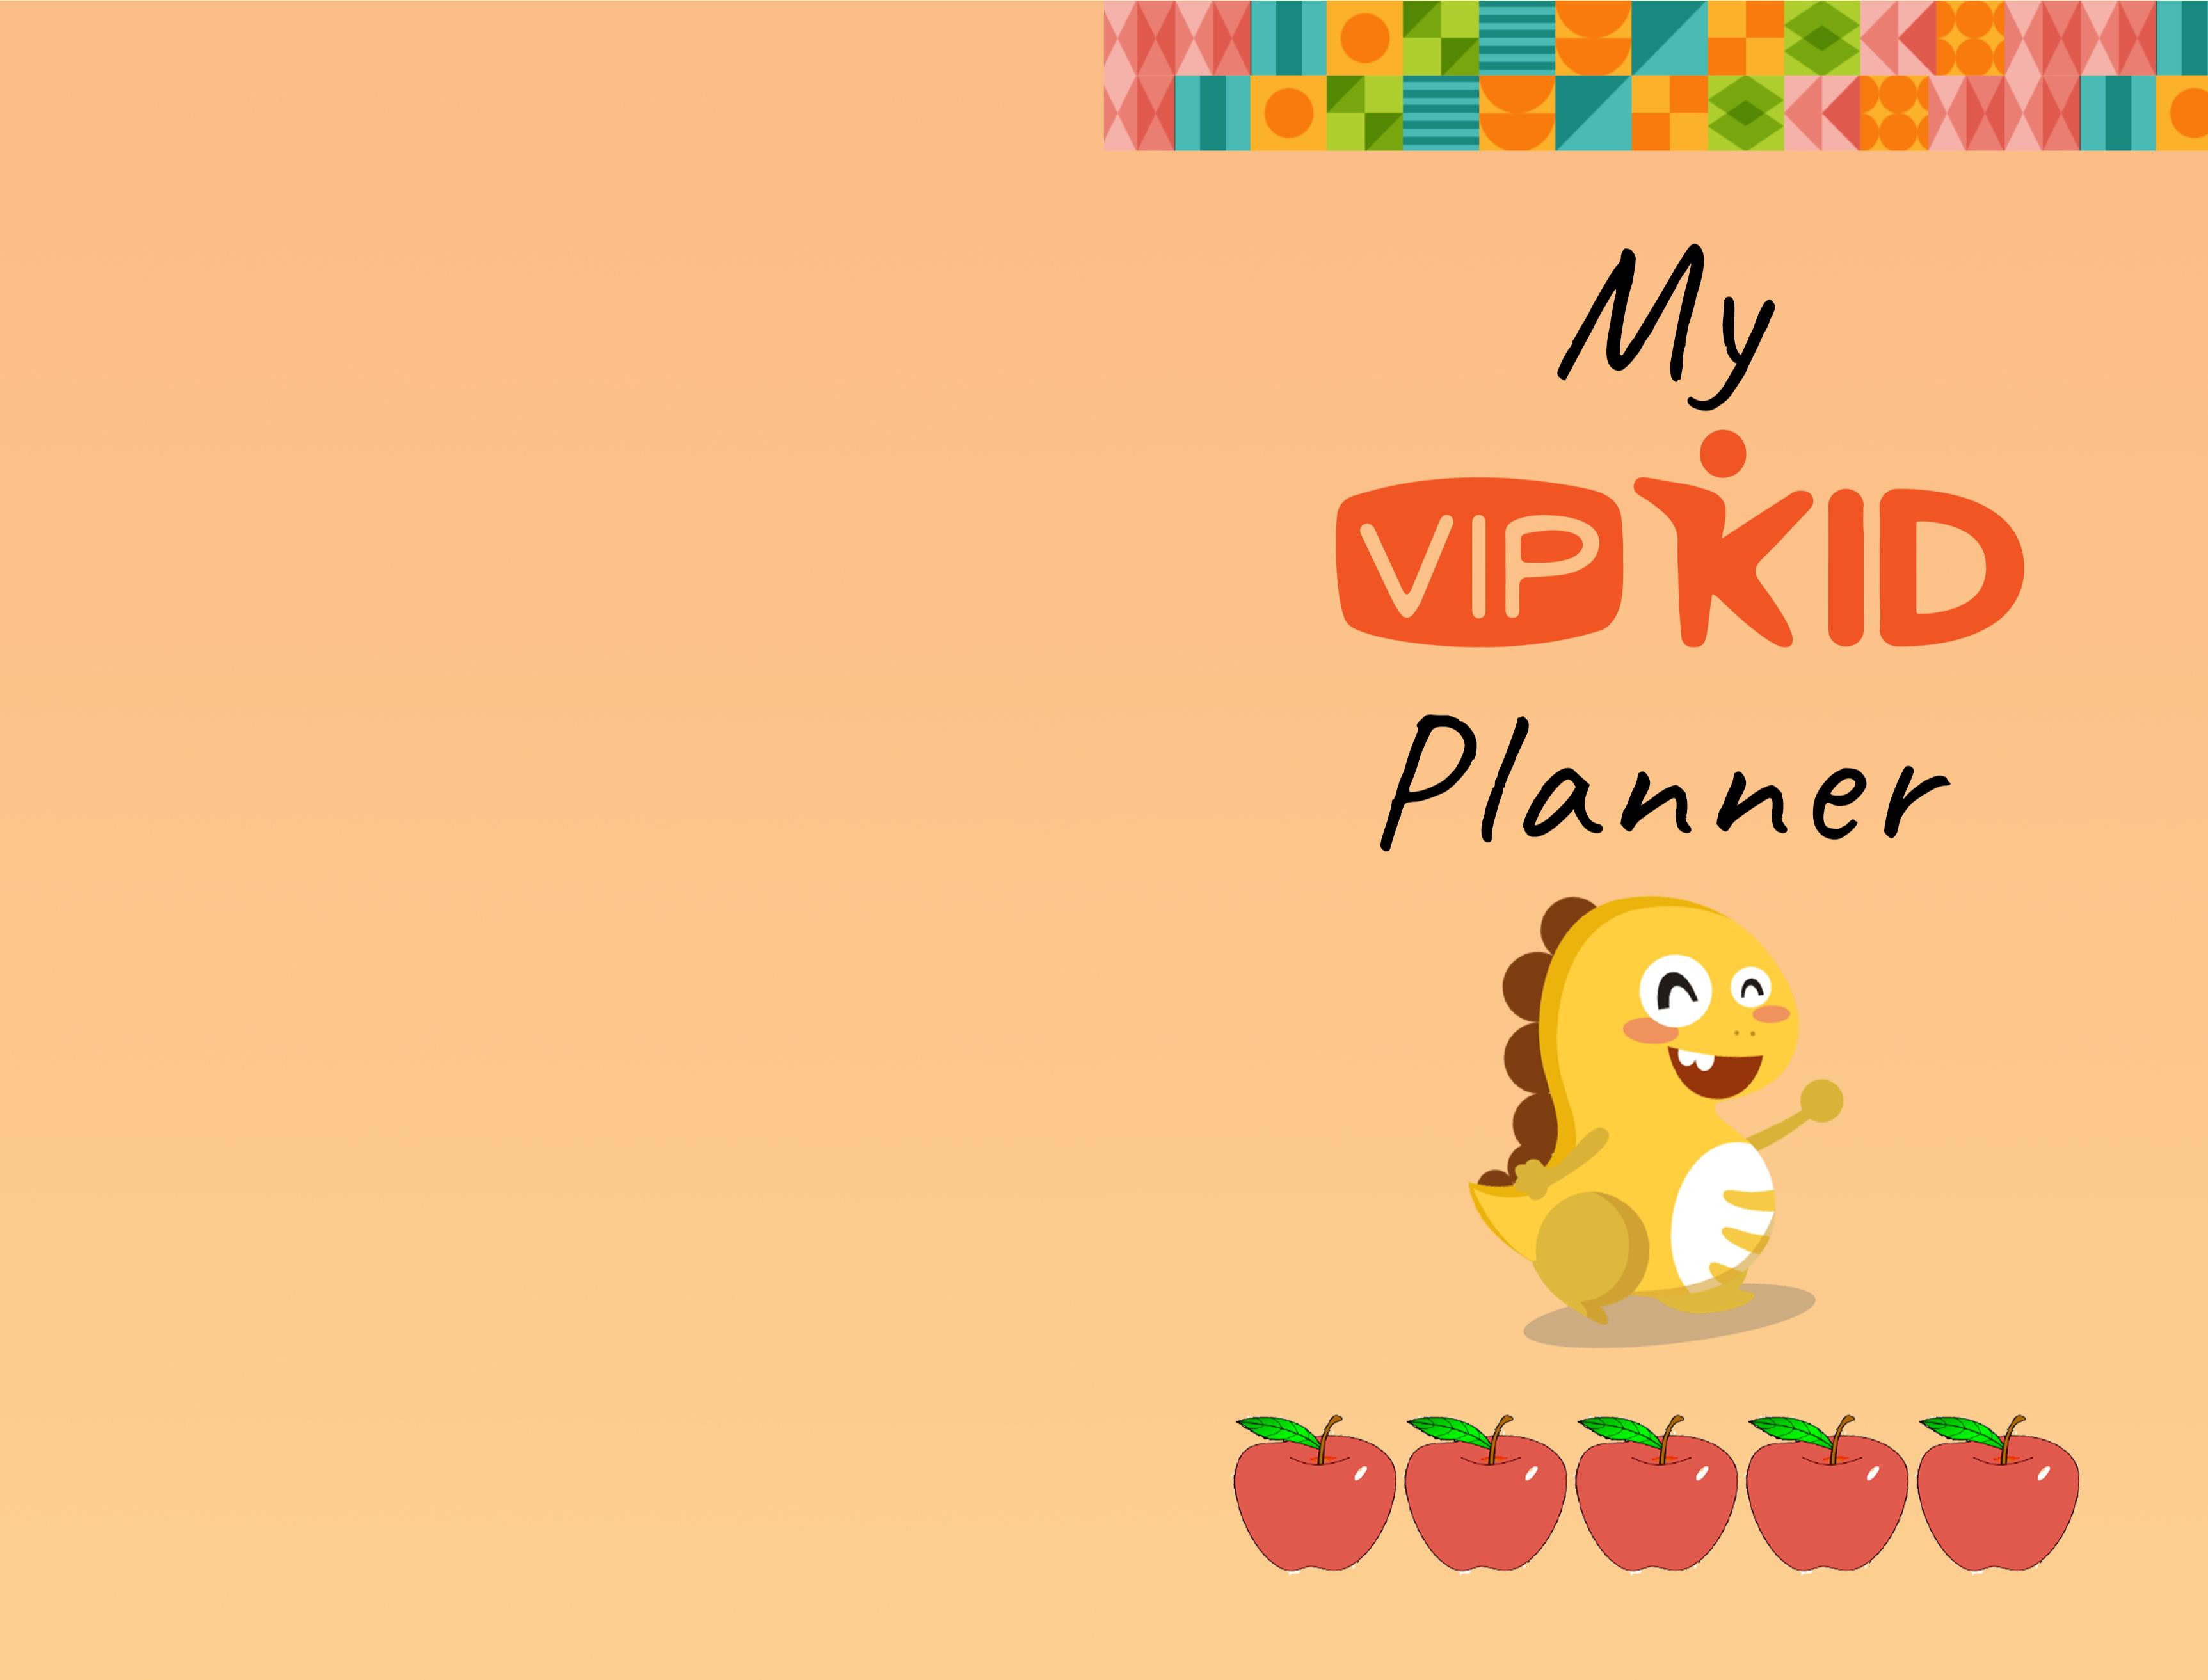 My VIPKid Planner cover image